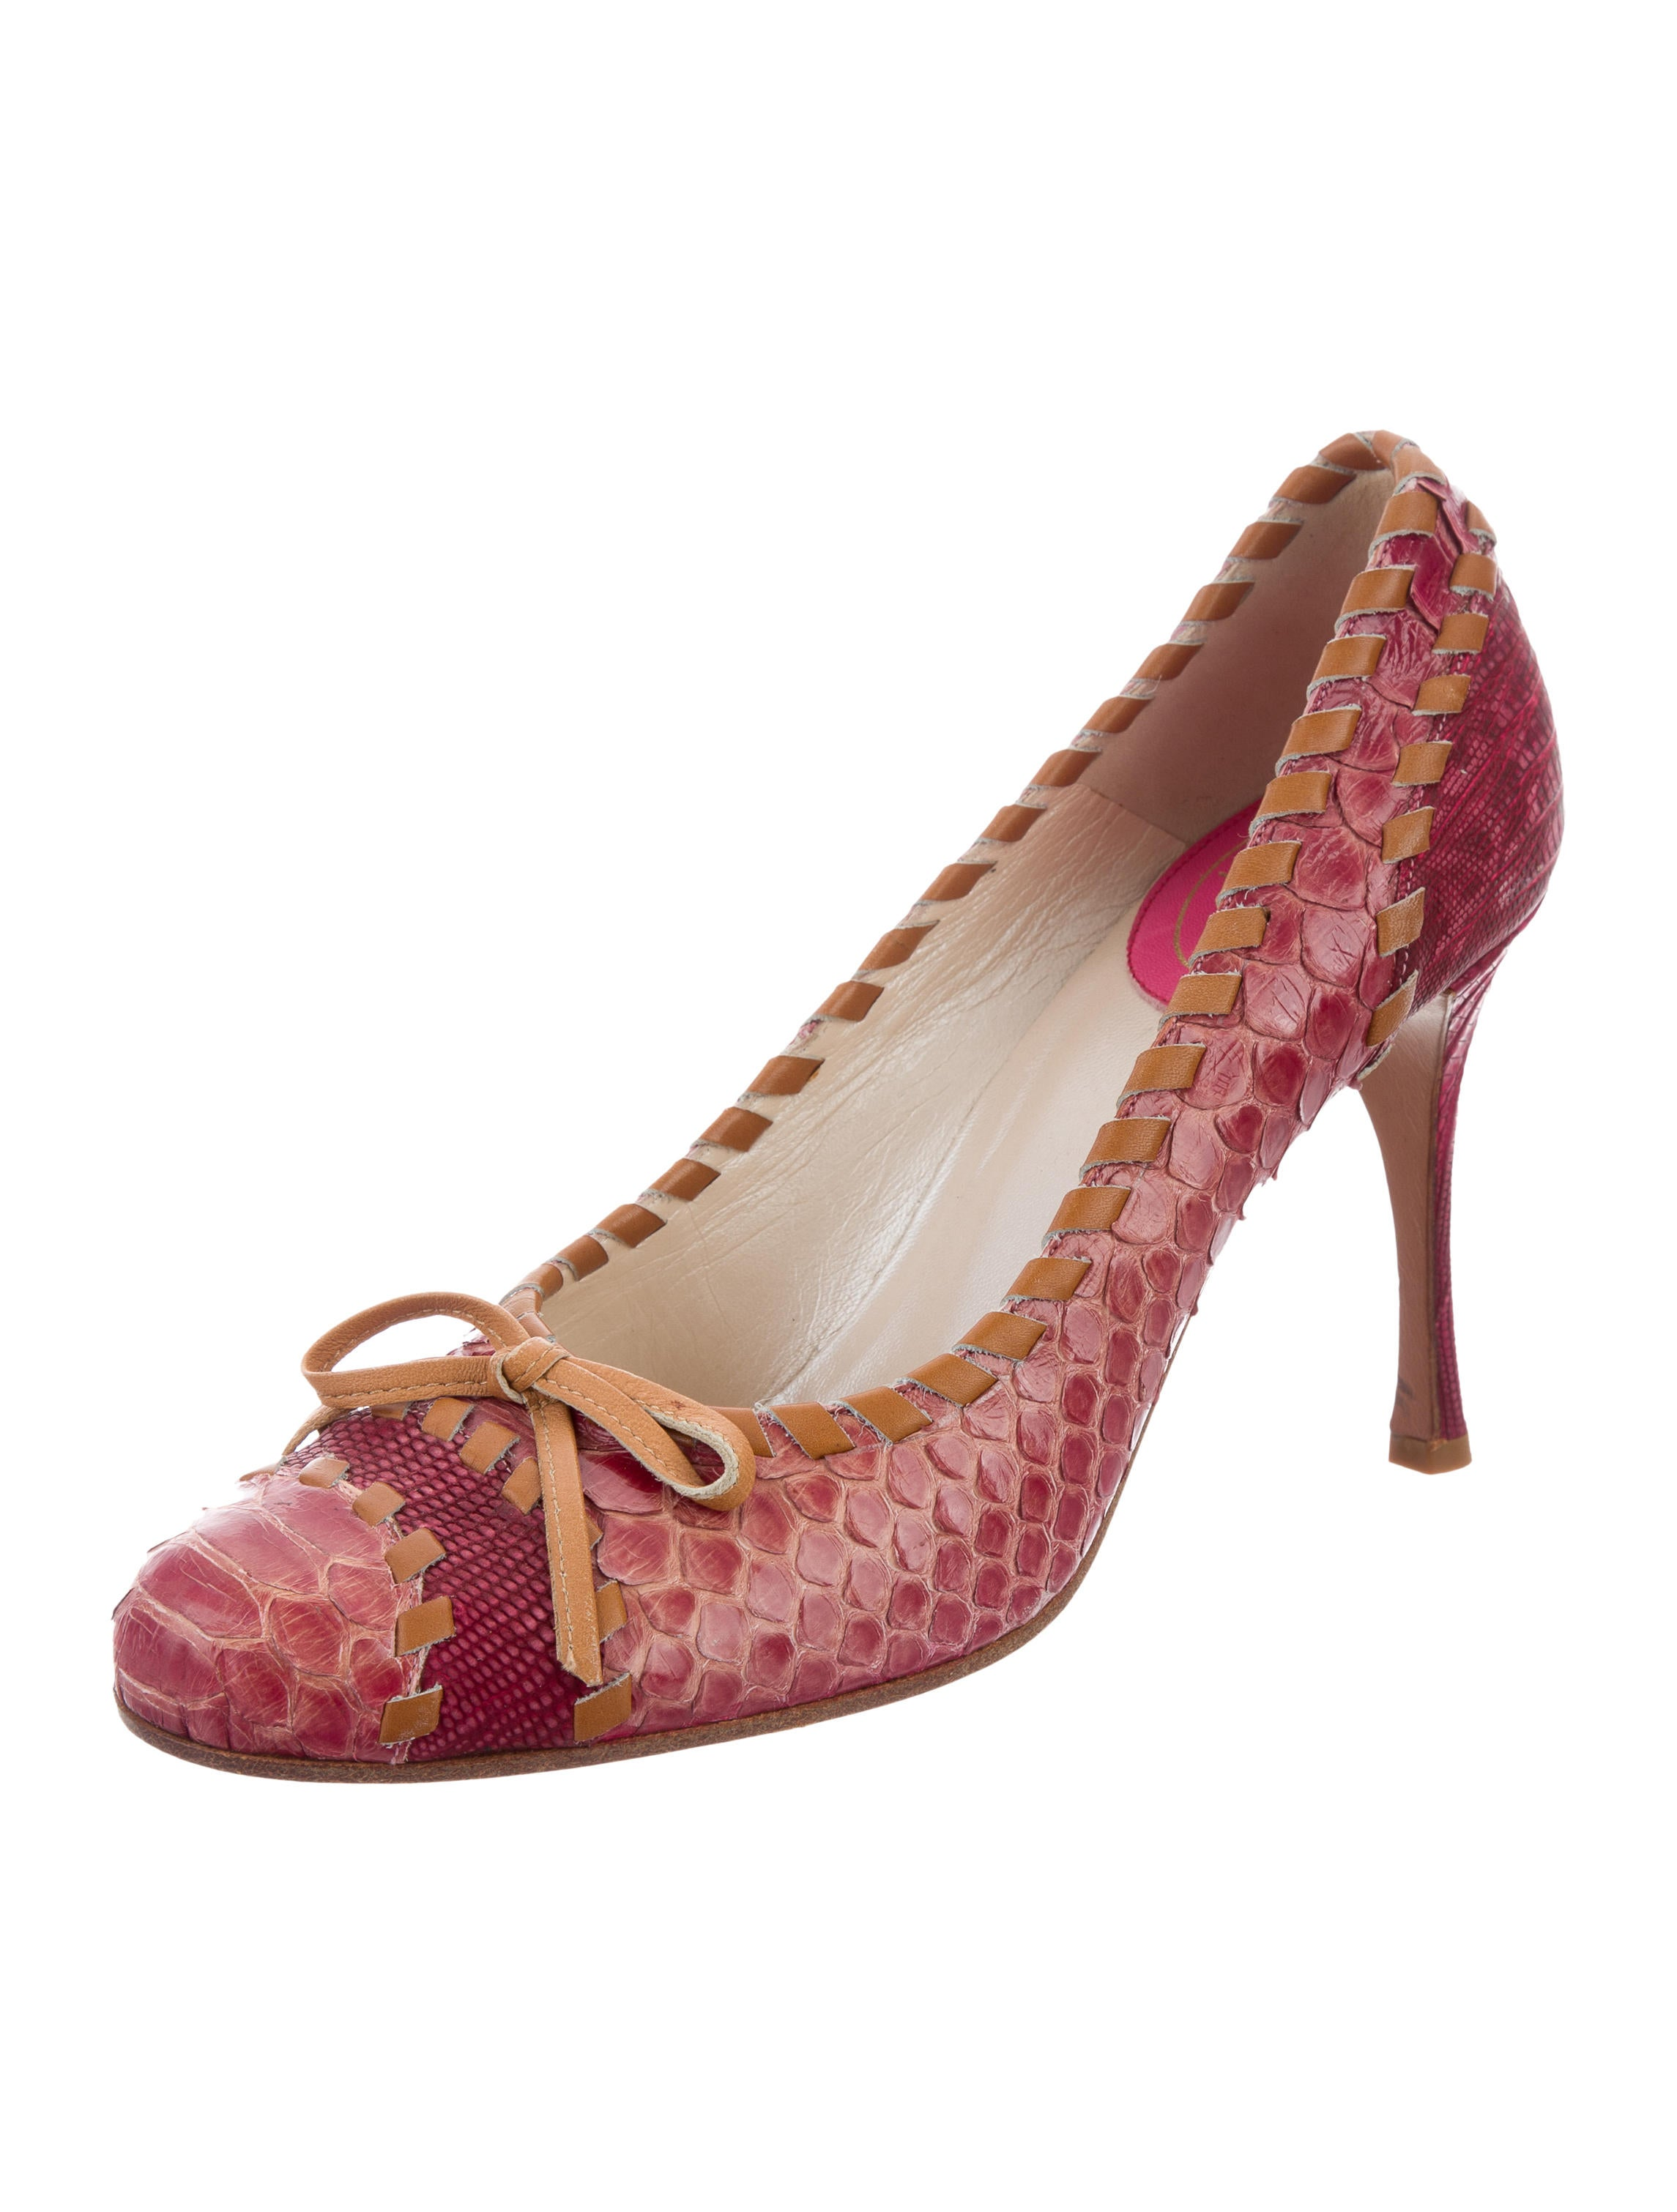 weston under lizard single christian girls Find this pin and more on gardens & parkland by westonparkhouse weston park is a country house in weston-under-lizard christian louboutin ivory illusion.